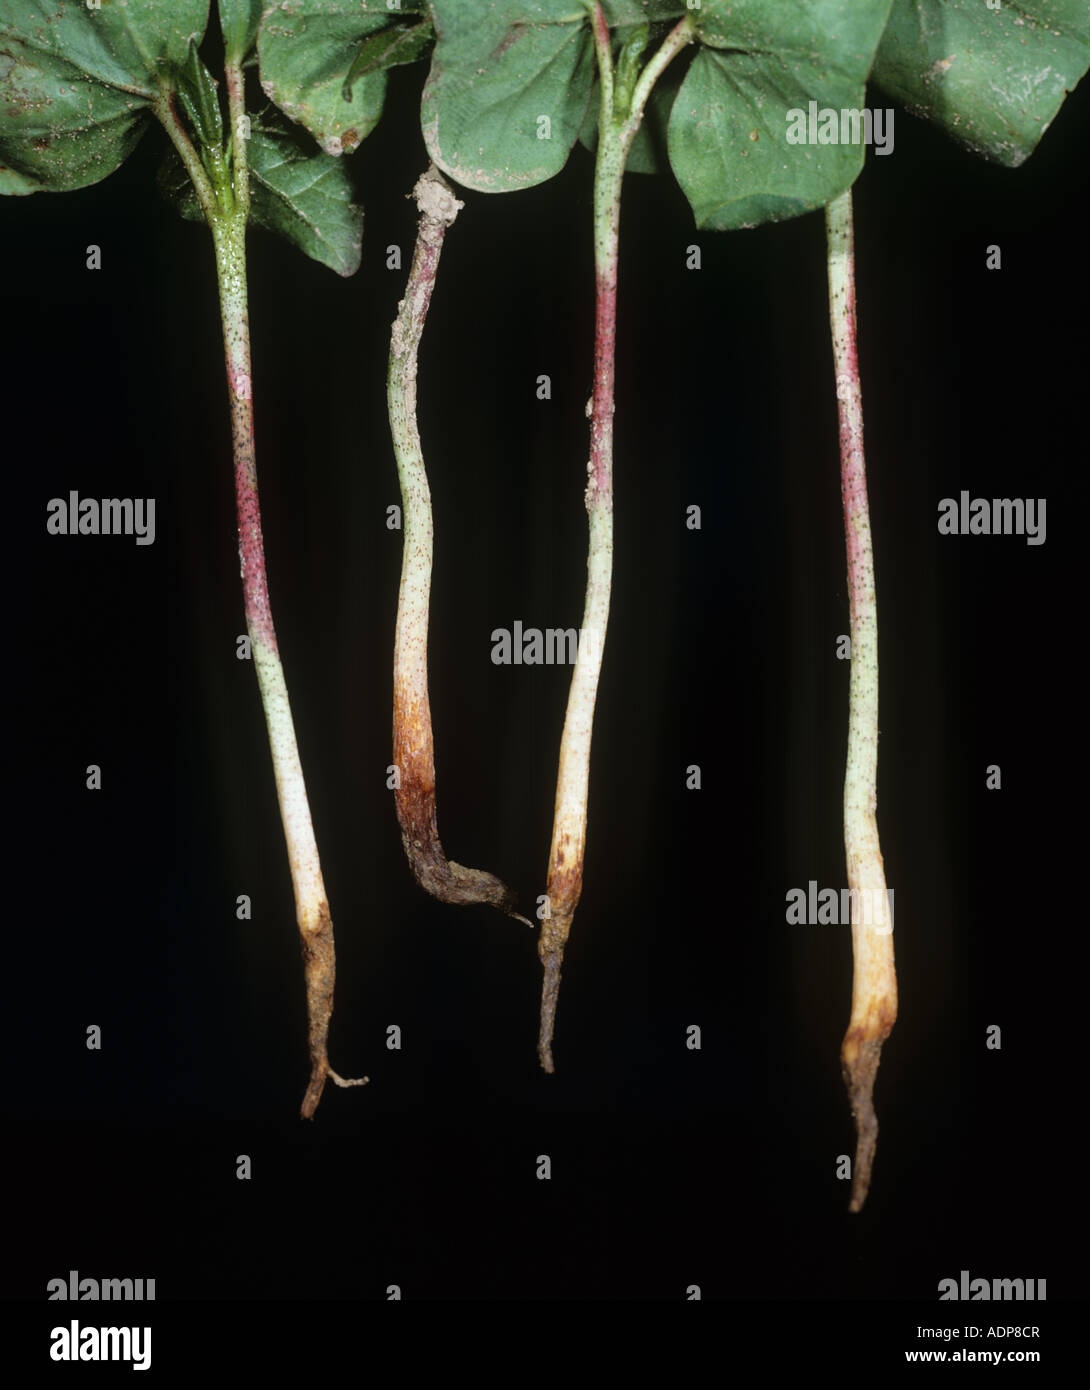 Sore shin or foot rot Rhizoctonia solani damage to seedling cotton roots Greece - Stock Image